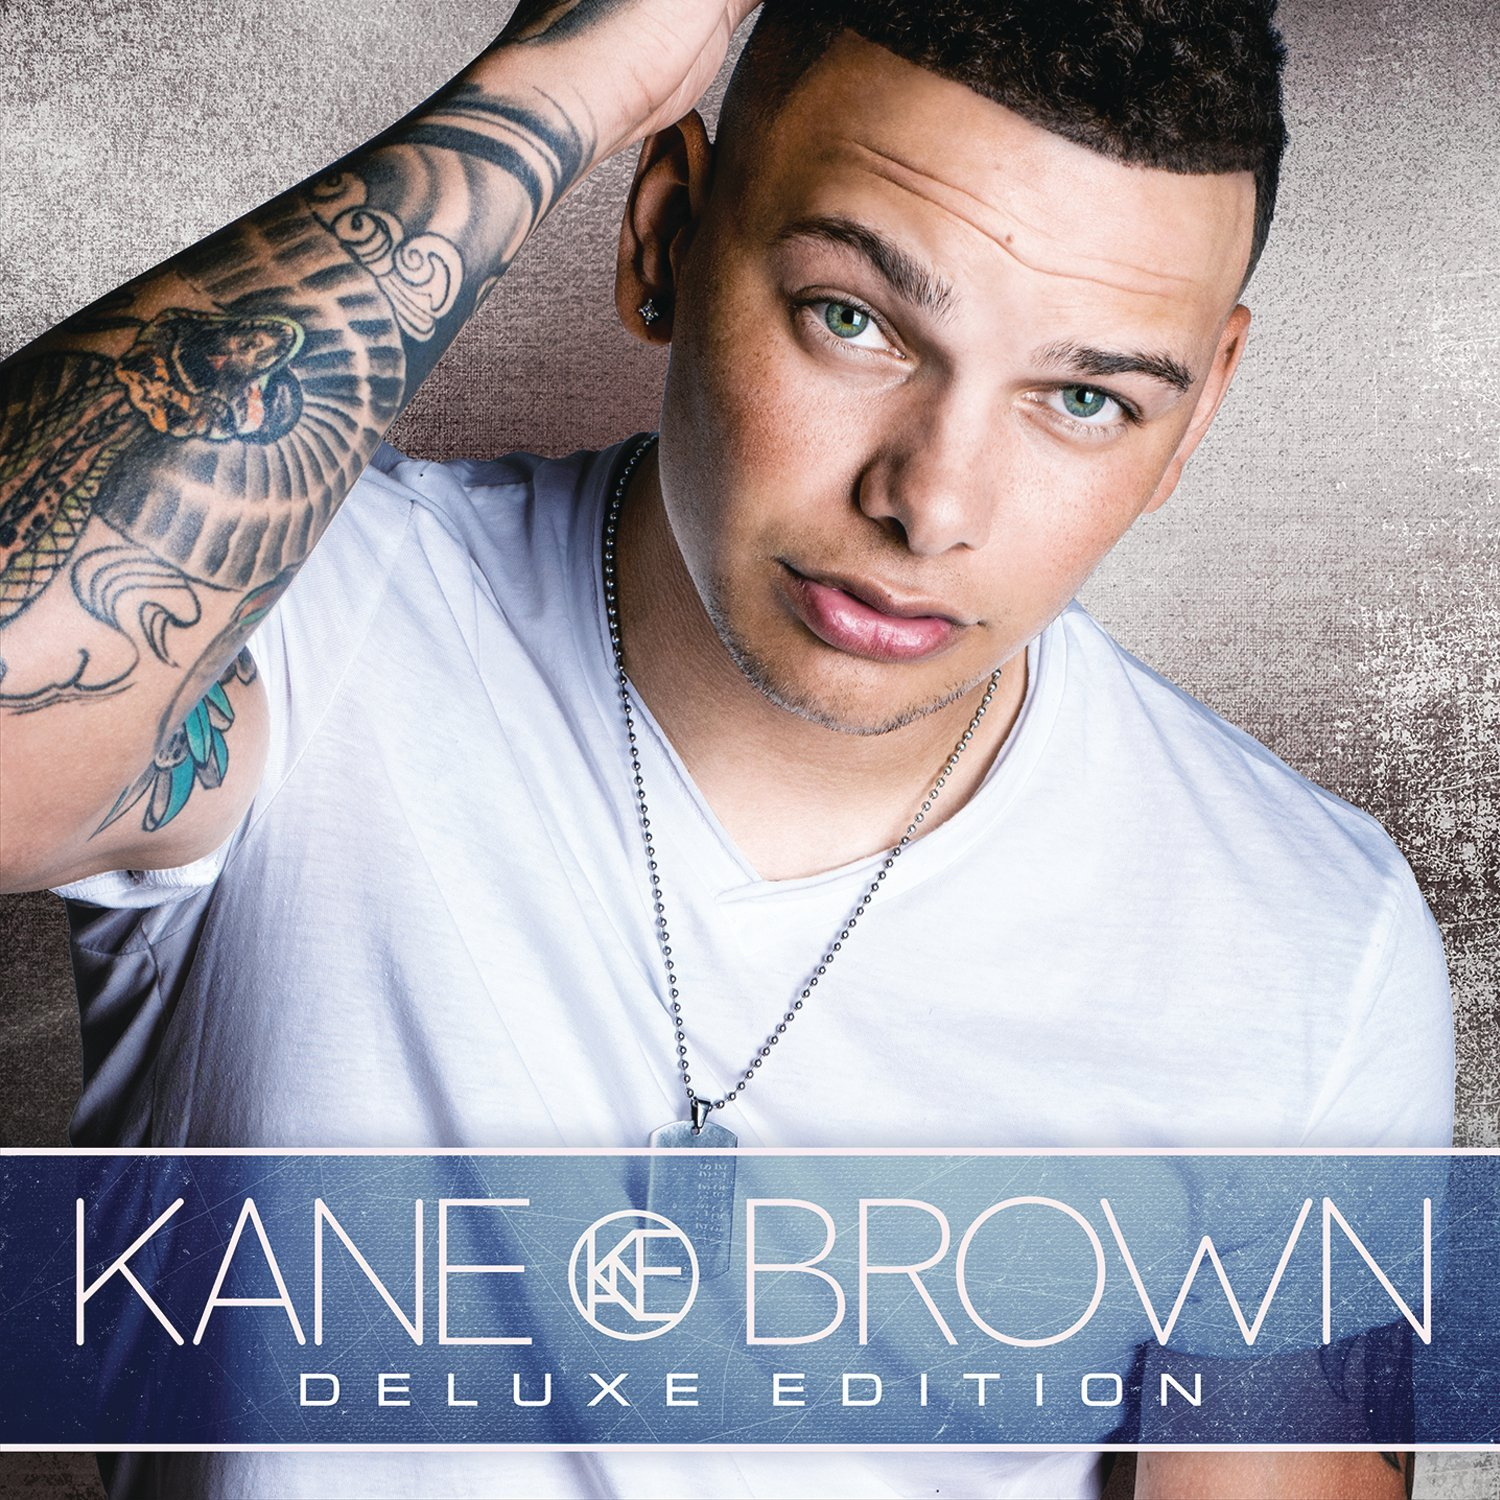 Kane Brown - Deluxe Version.jpg